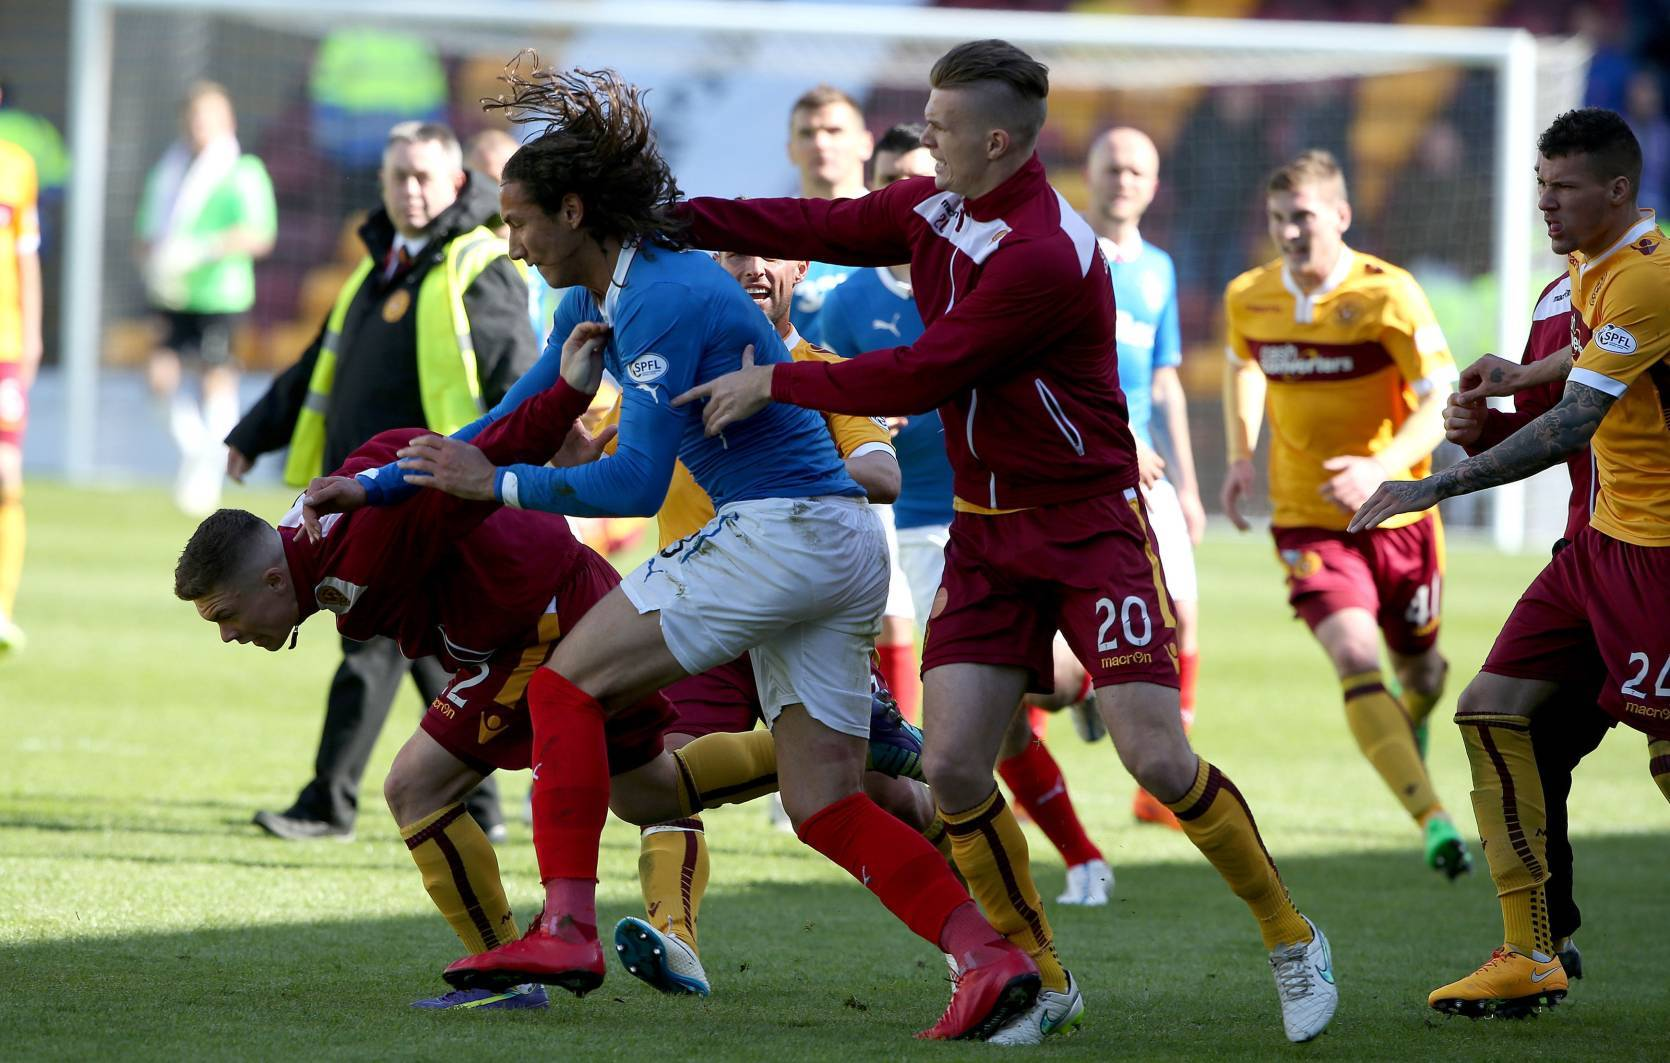 Rangers player Bilel Mohsni reacts during an incident.